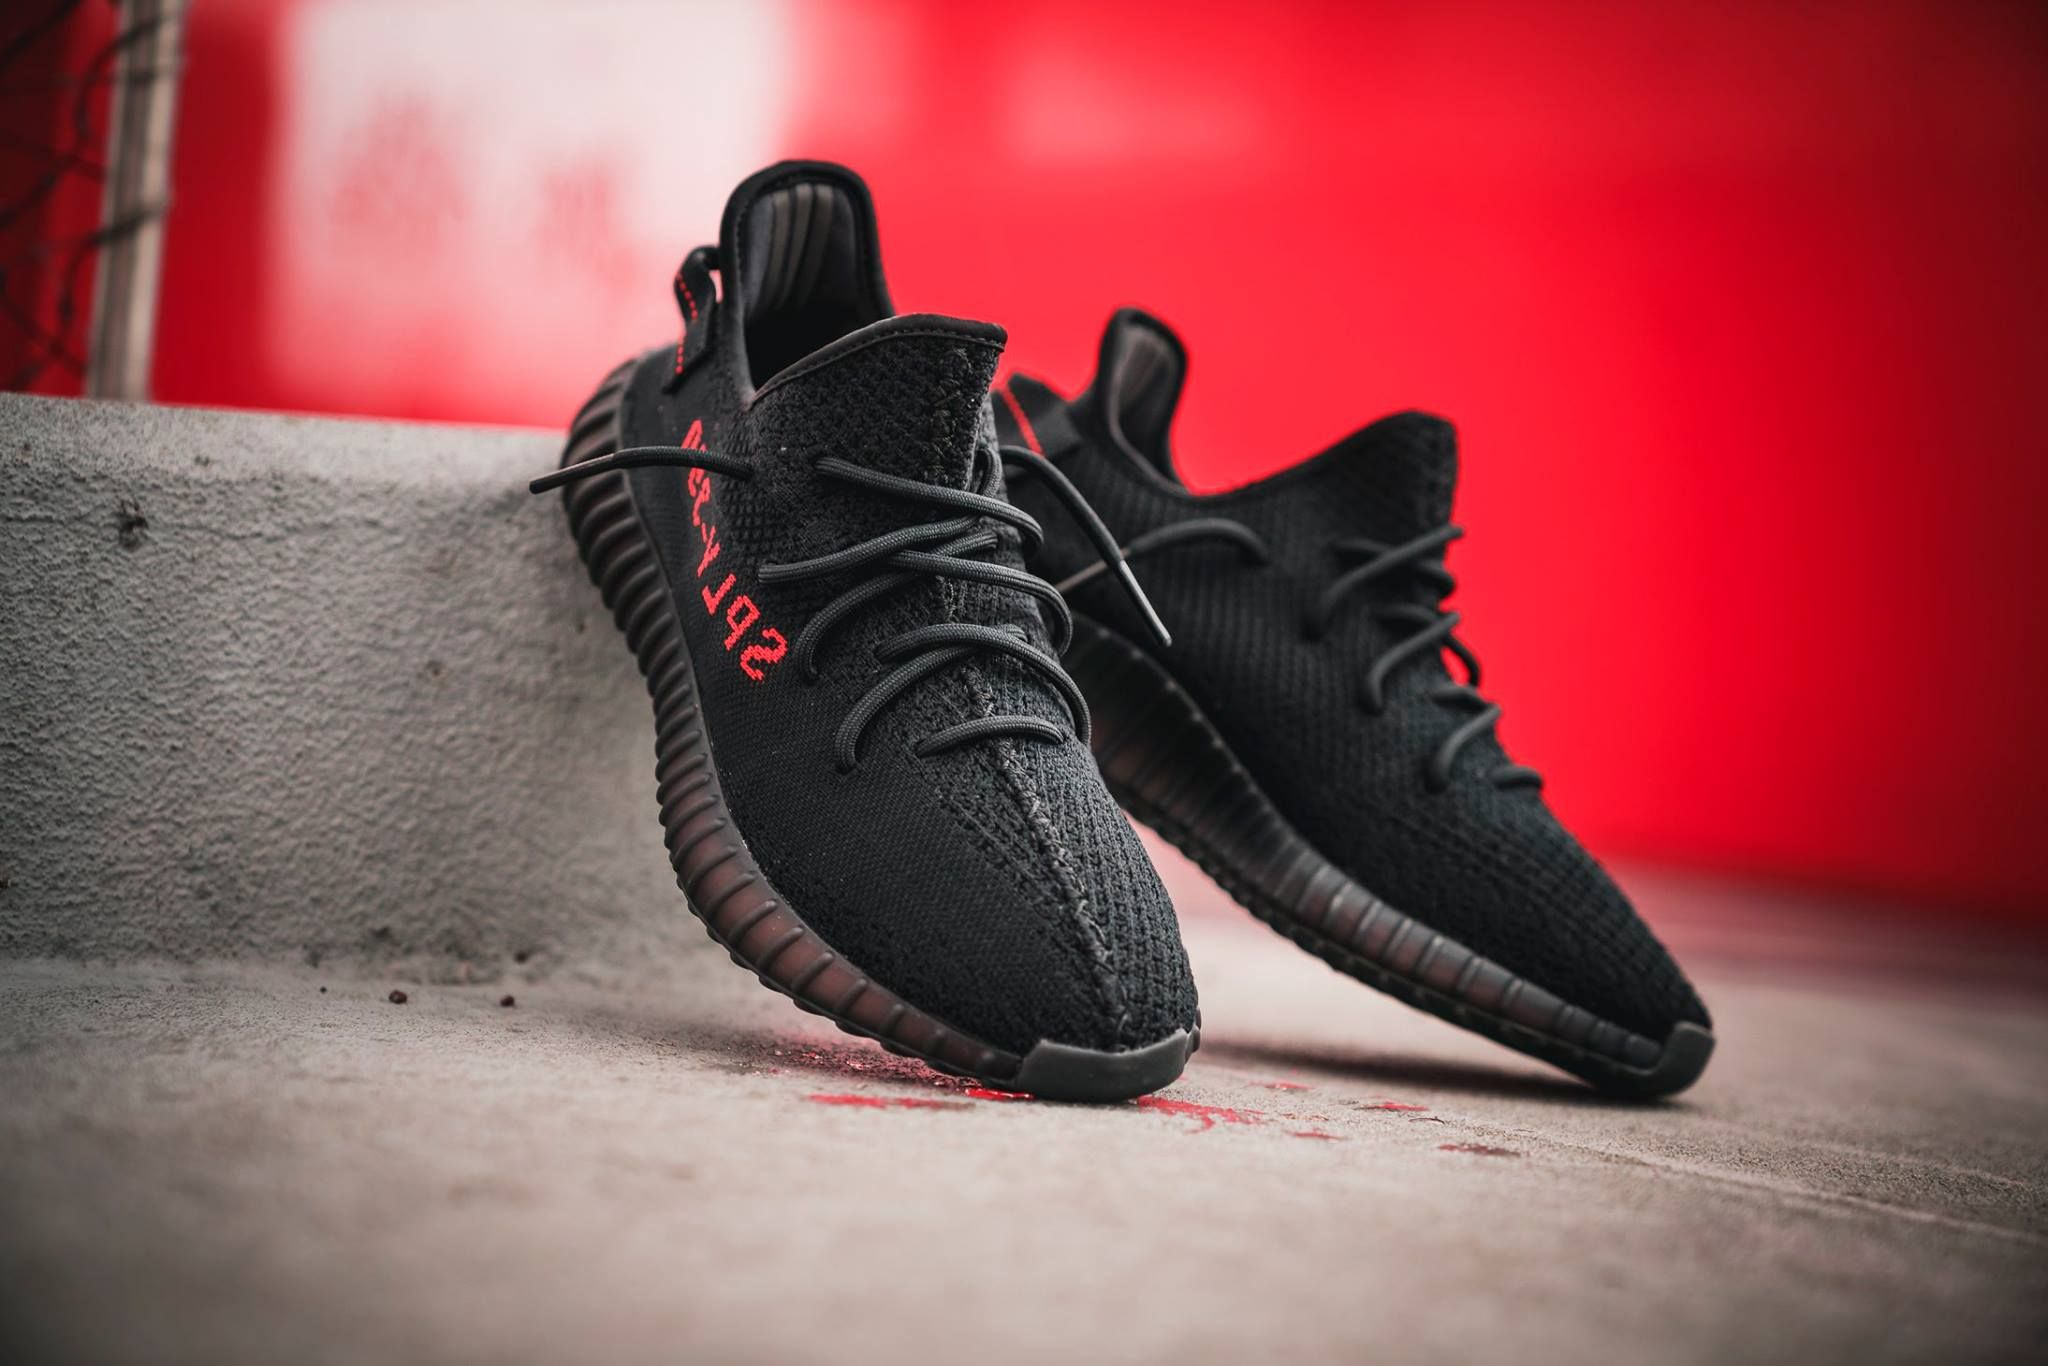 b3e16d8a1be8b adidas Yeezy Boost 350 V2 – Core Black   Red   Closer Look